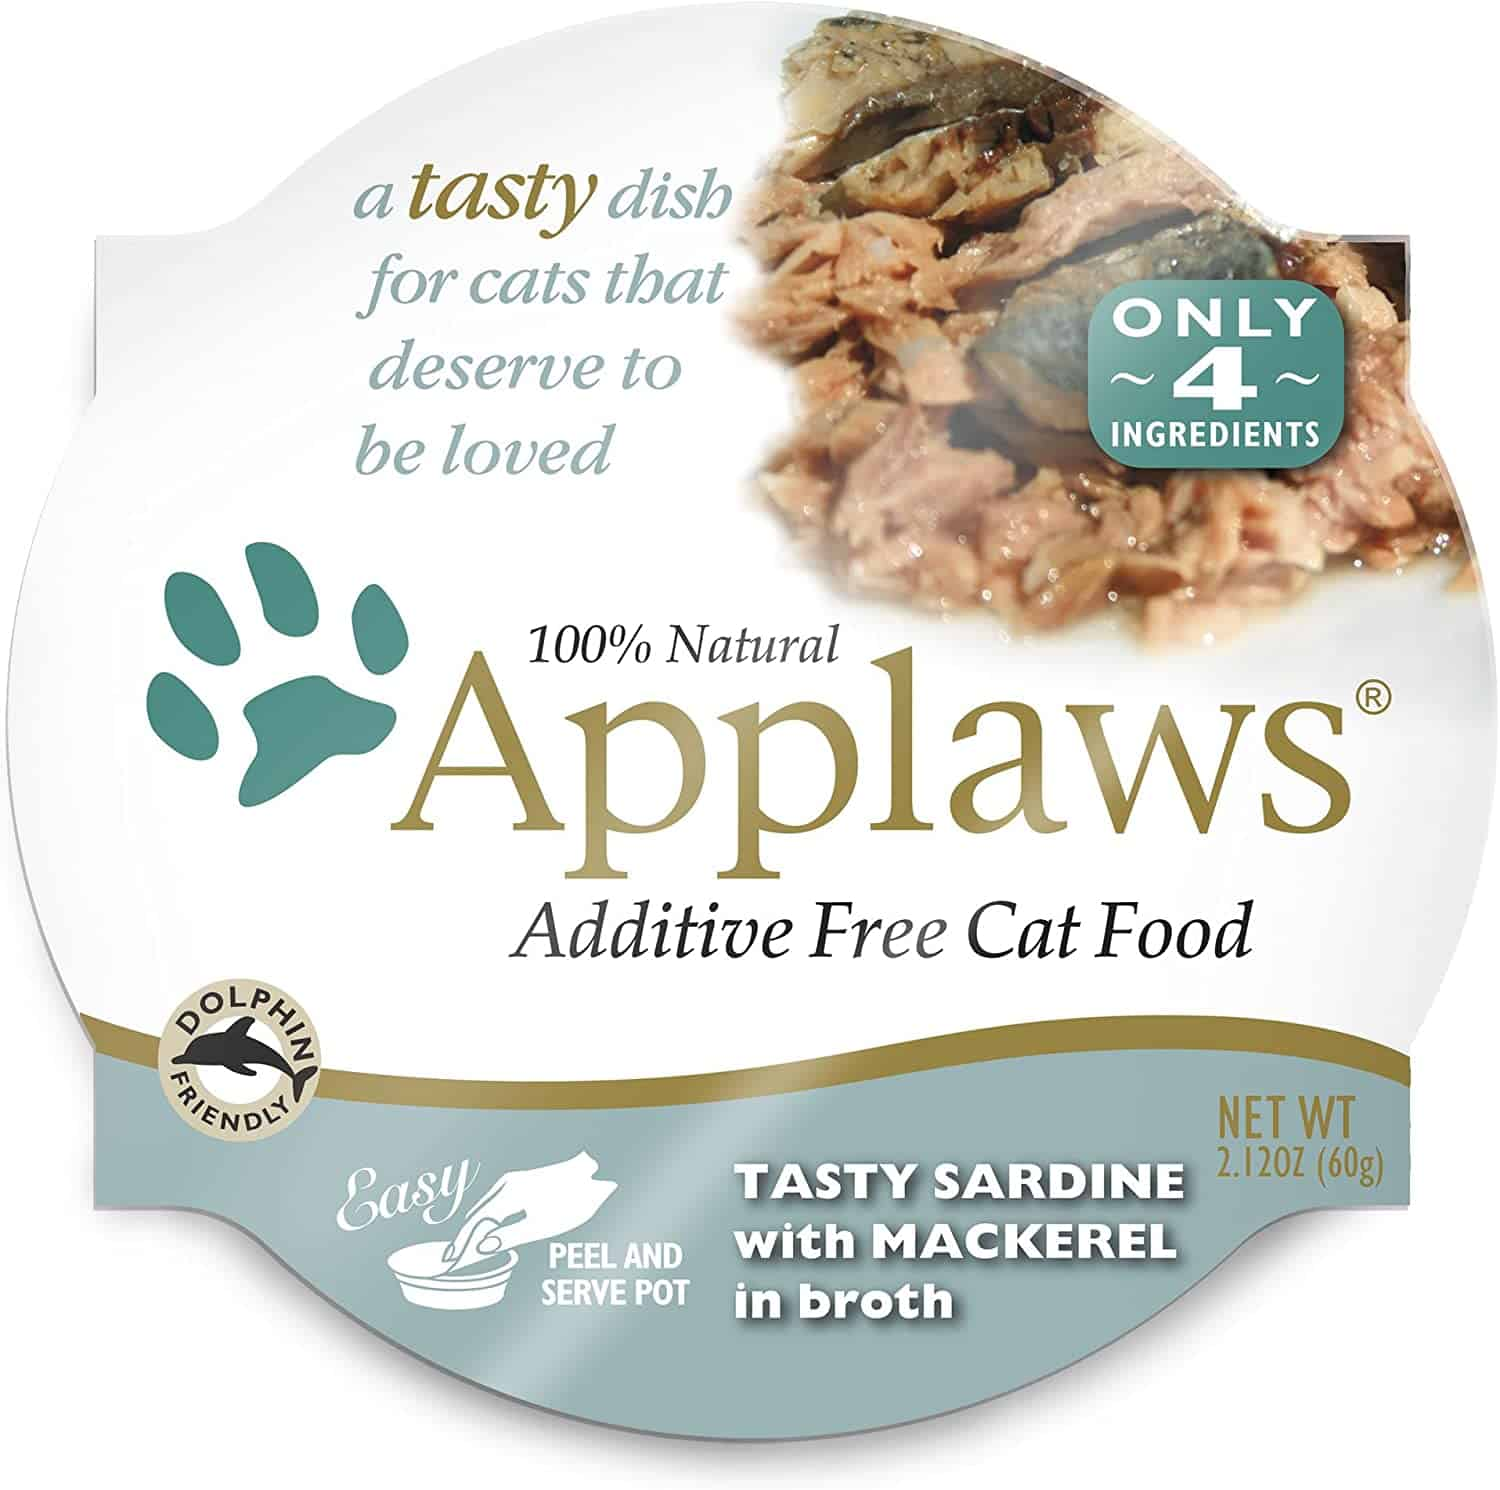 2020 Applaws Cat Food Review: Naturally Nutritious Cat Food 6